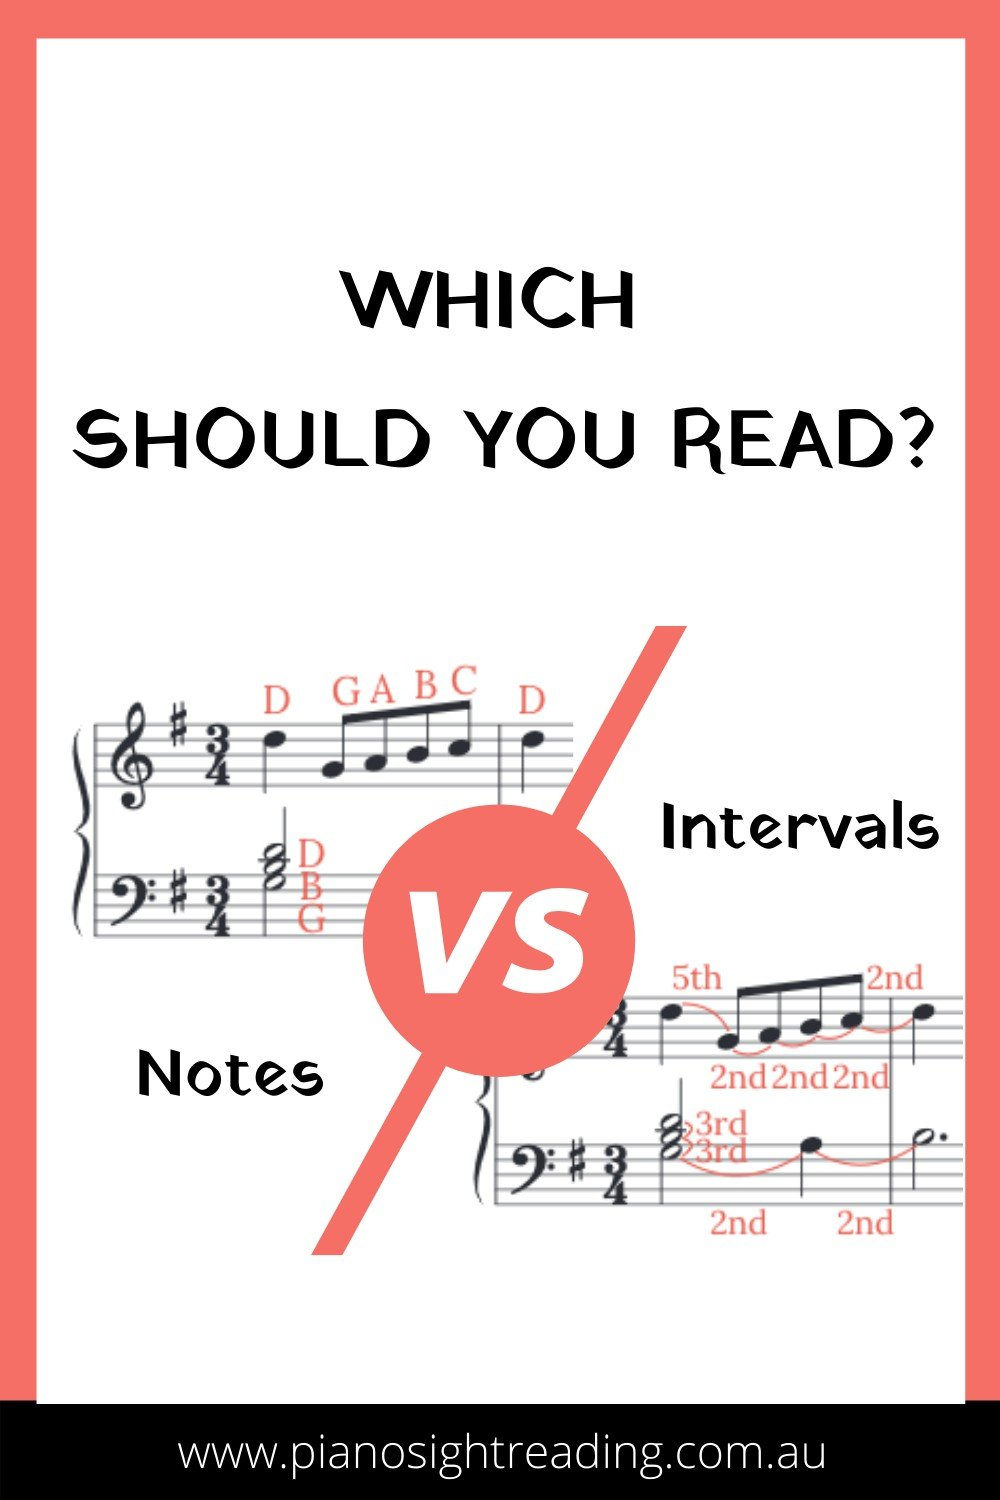 read the notes or the intervals